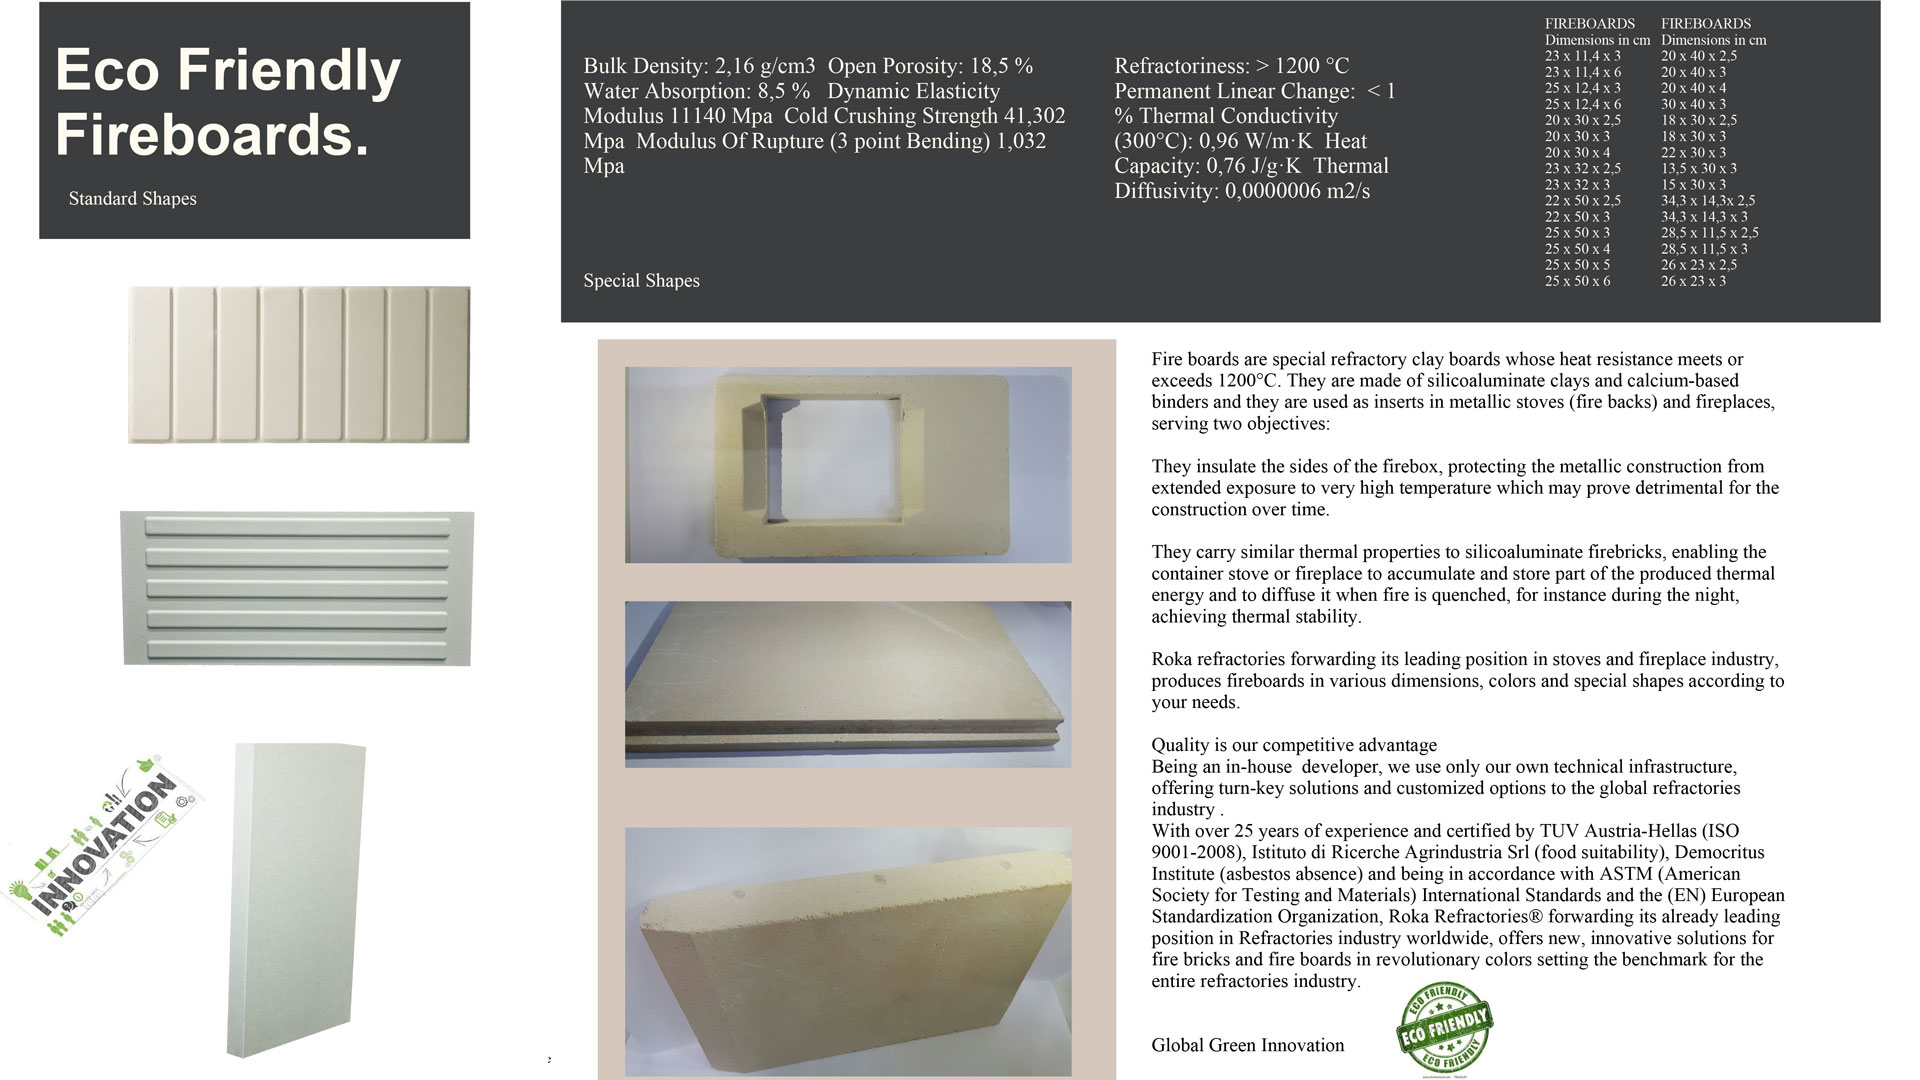 Roka-Refractories-Slider-Eco-Friendly-Fireboards